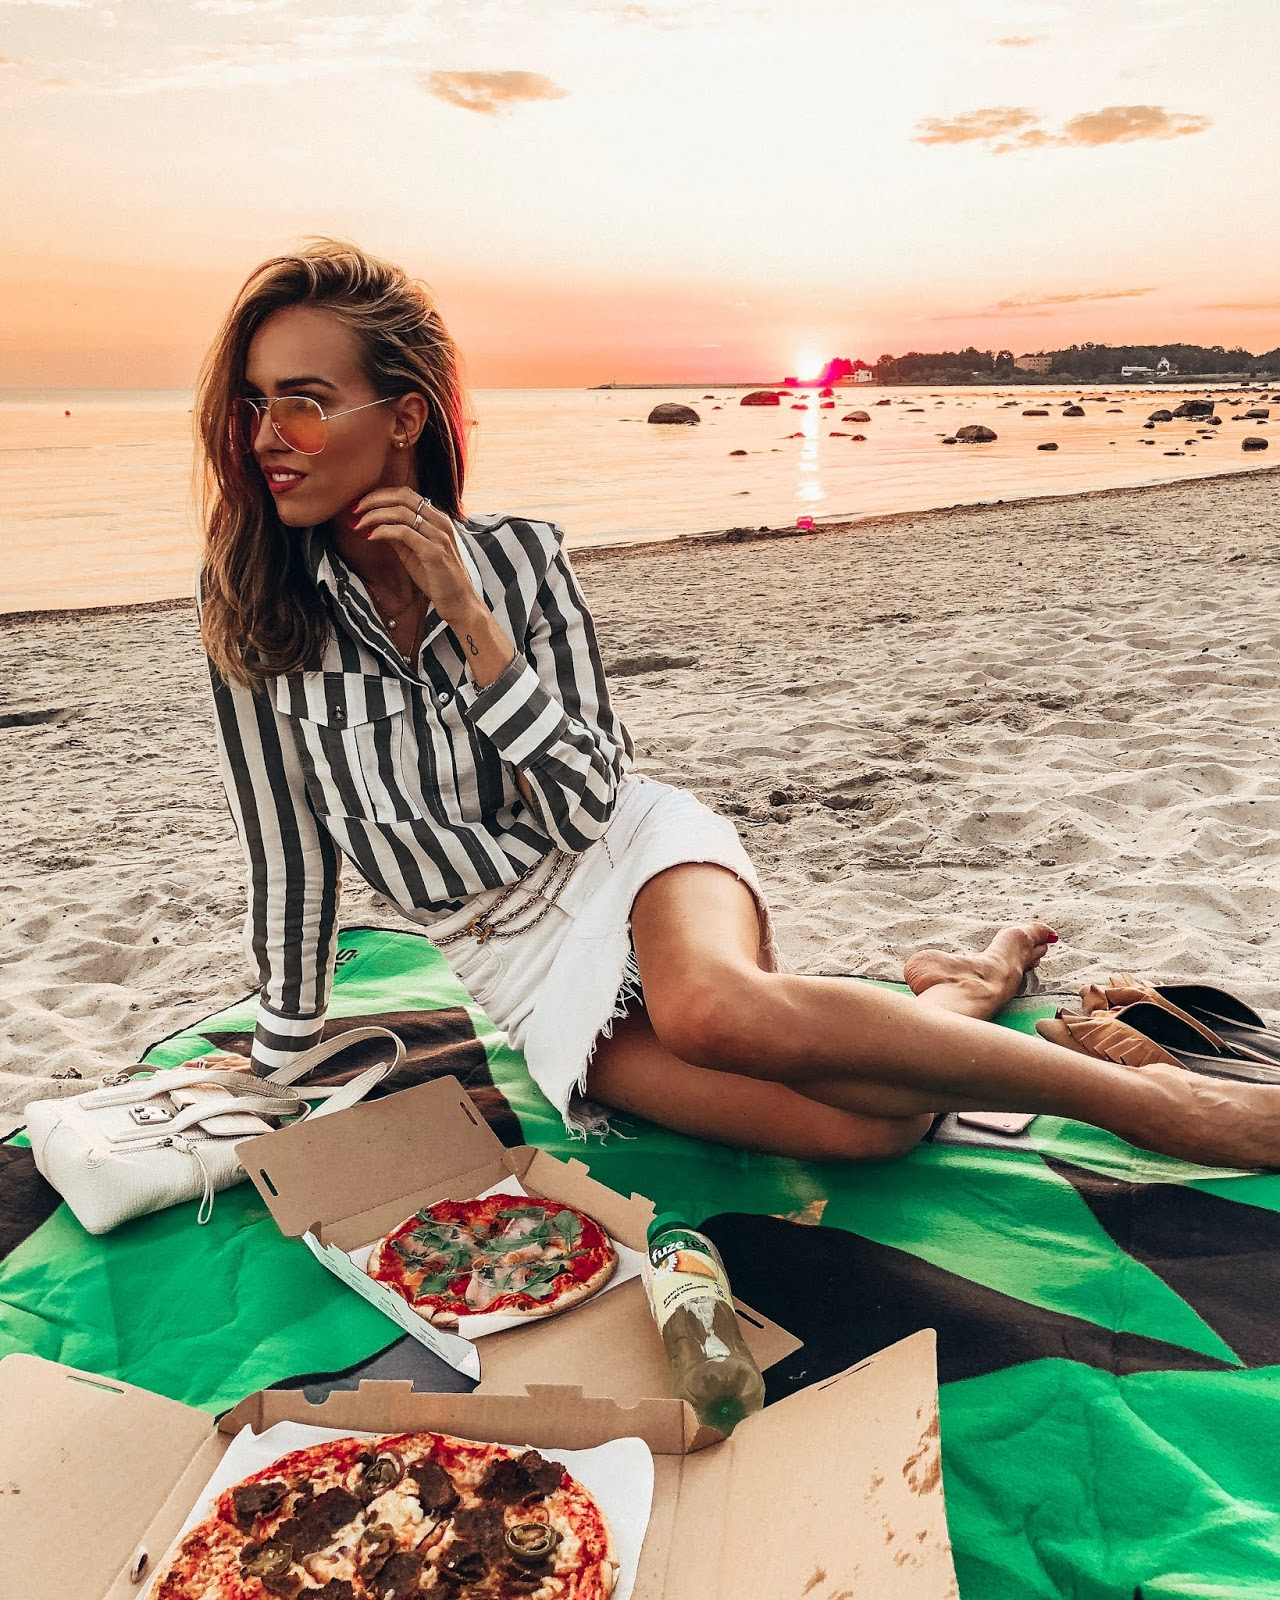 beach picnic pizza summer girl sunset